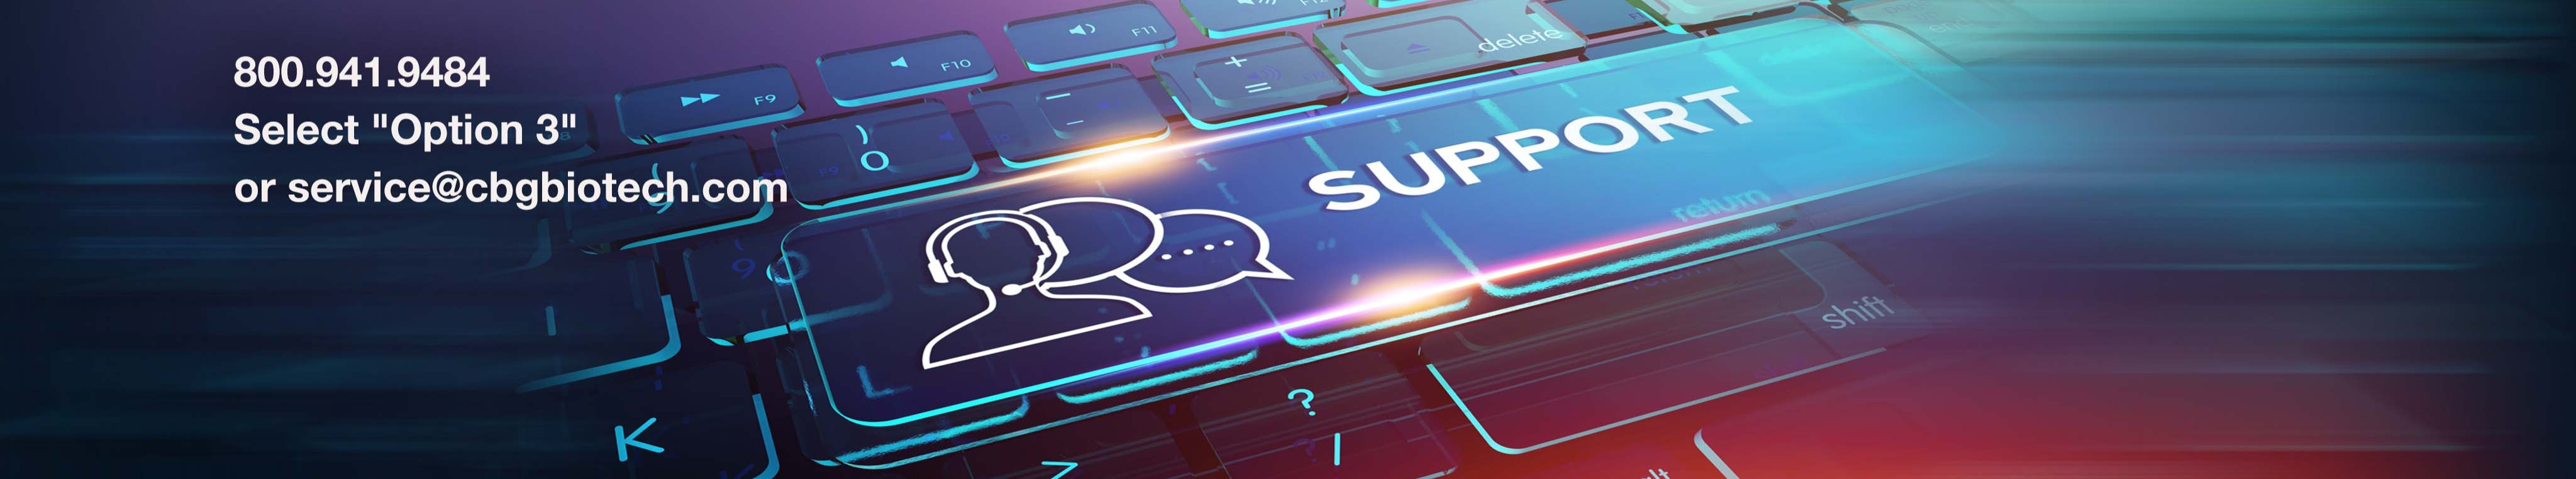 support-service2